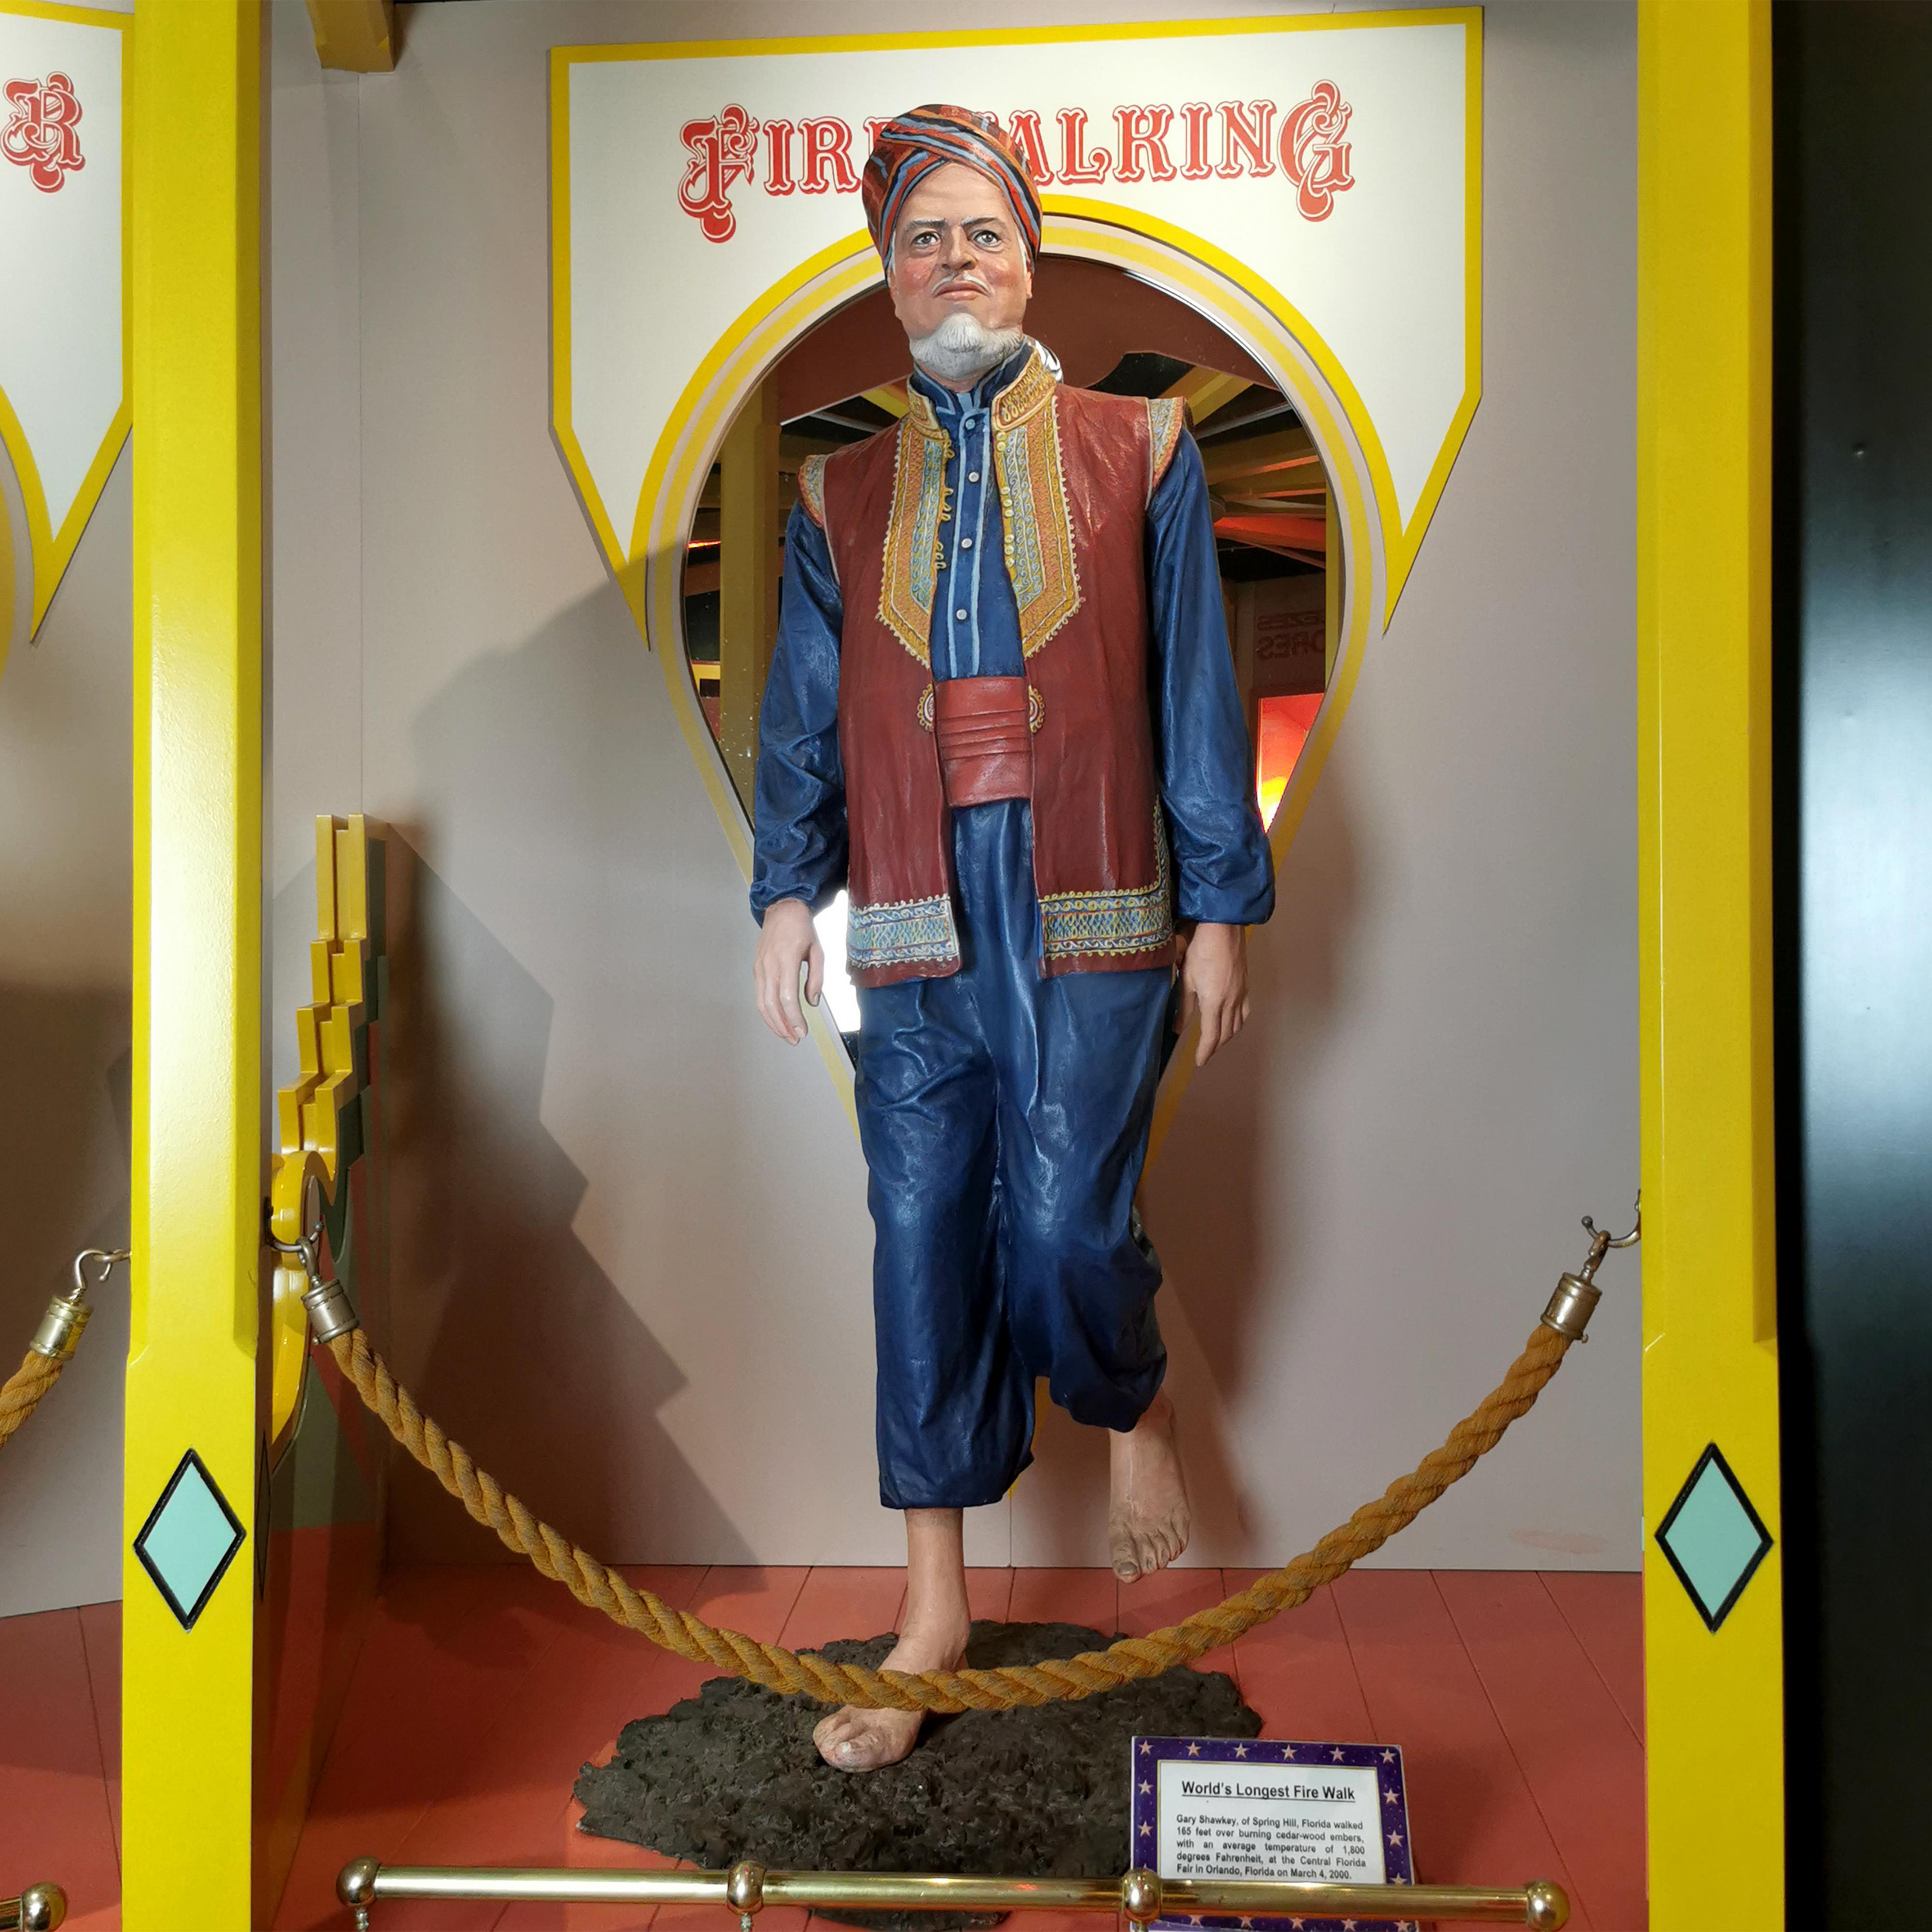 World Record Firewalker Guinness Museum Display Circus Sideshow Character